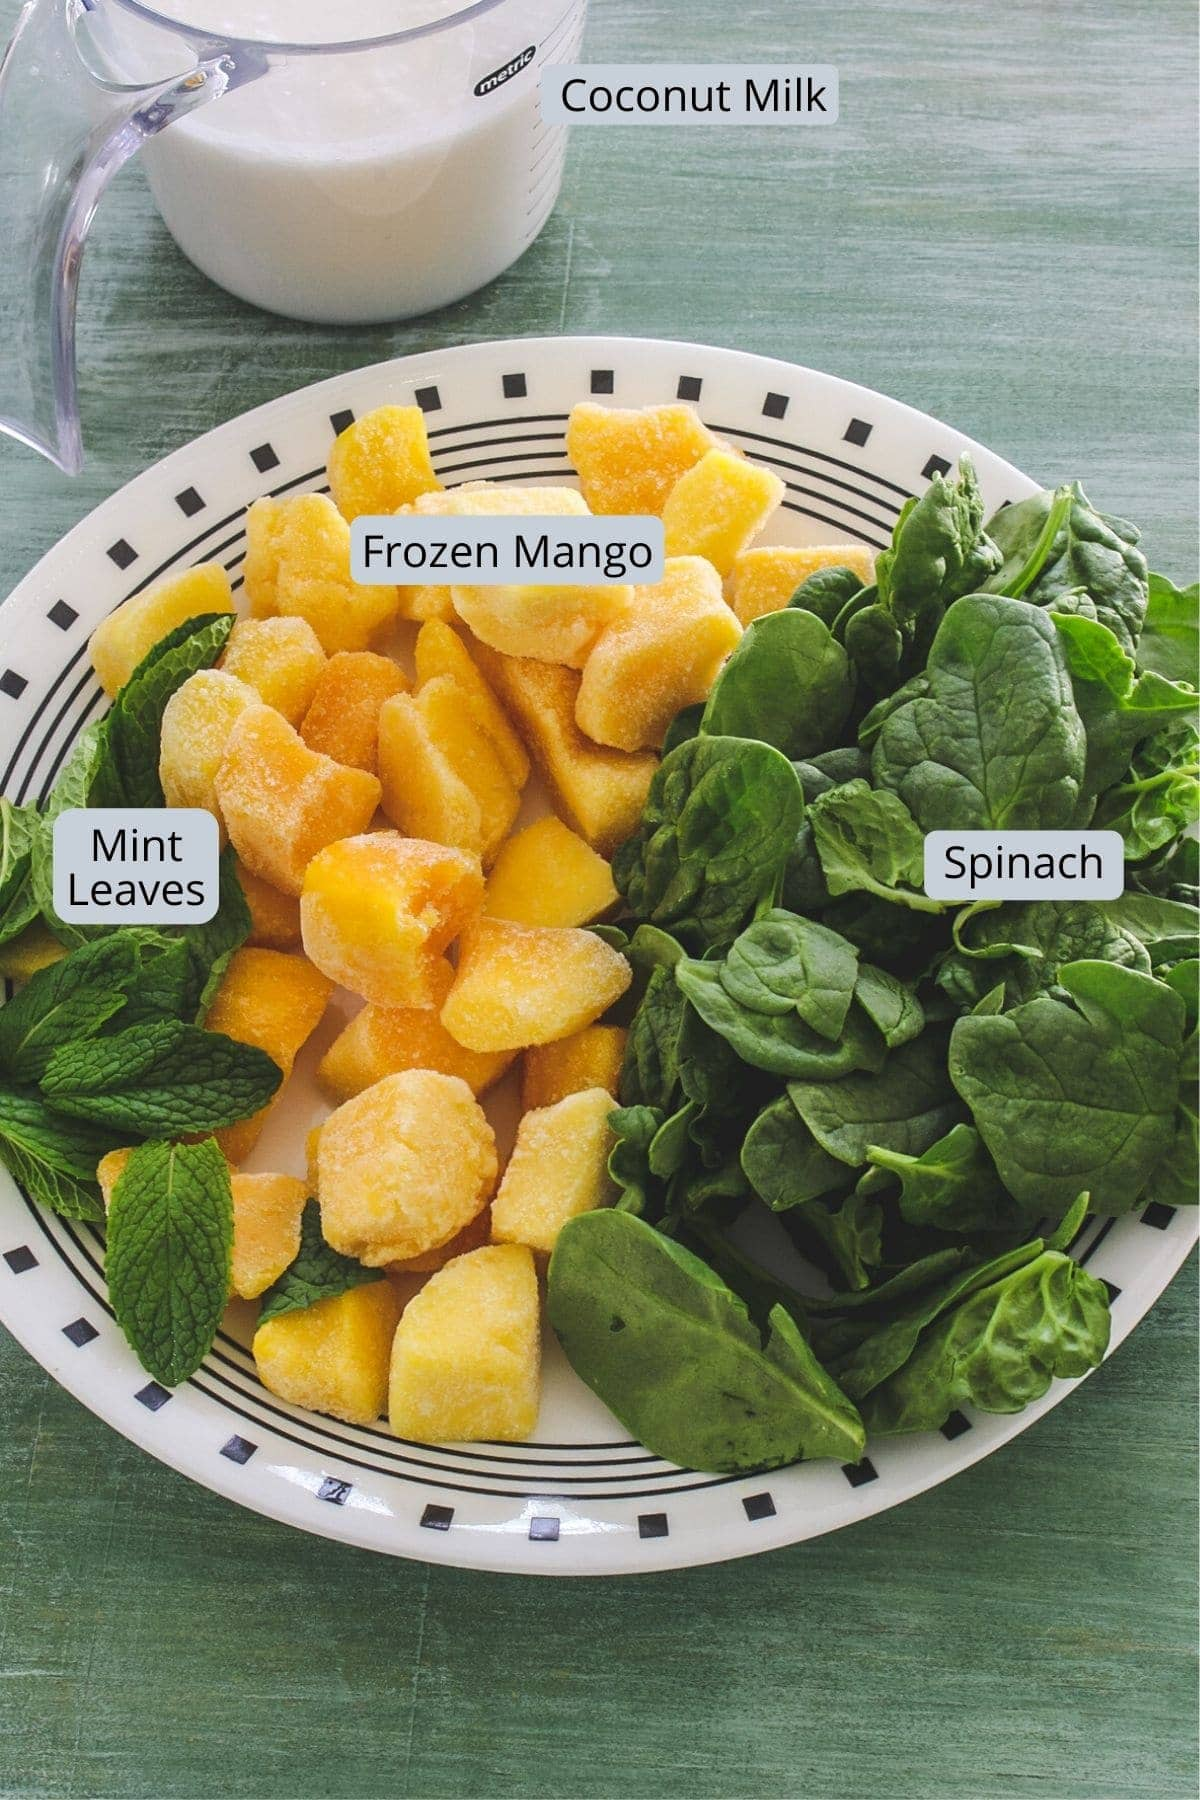 Mango mint smoothie ingredients in a plate and cup